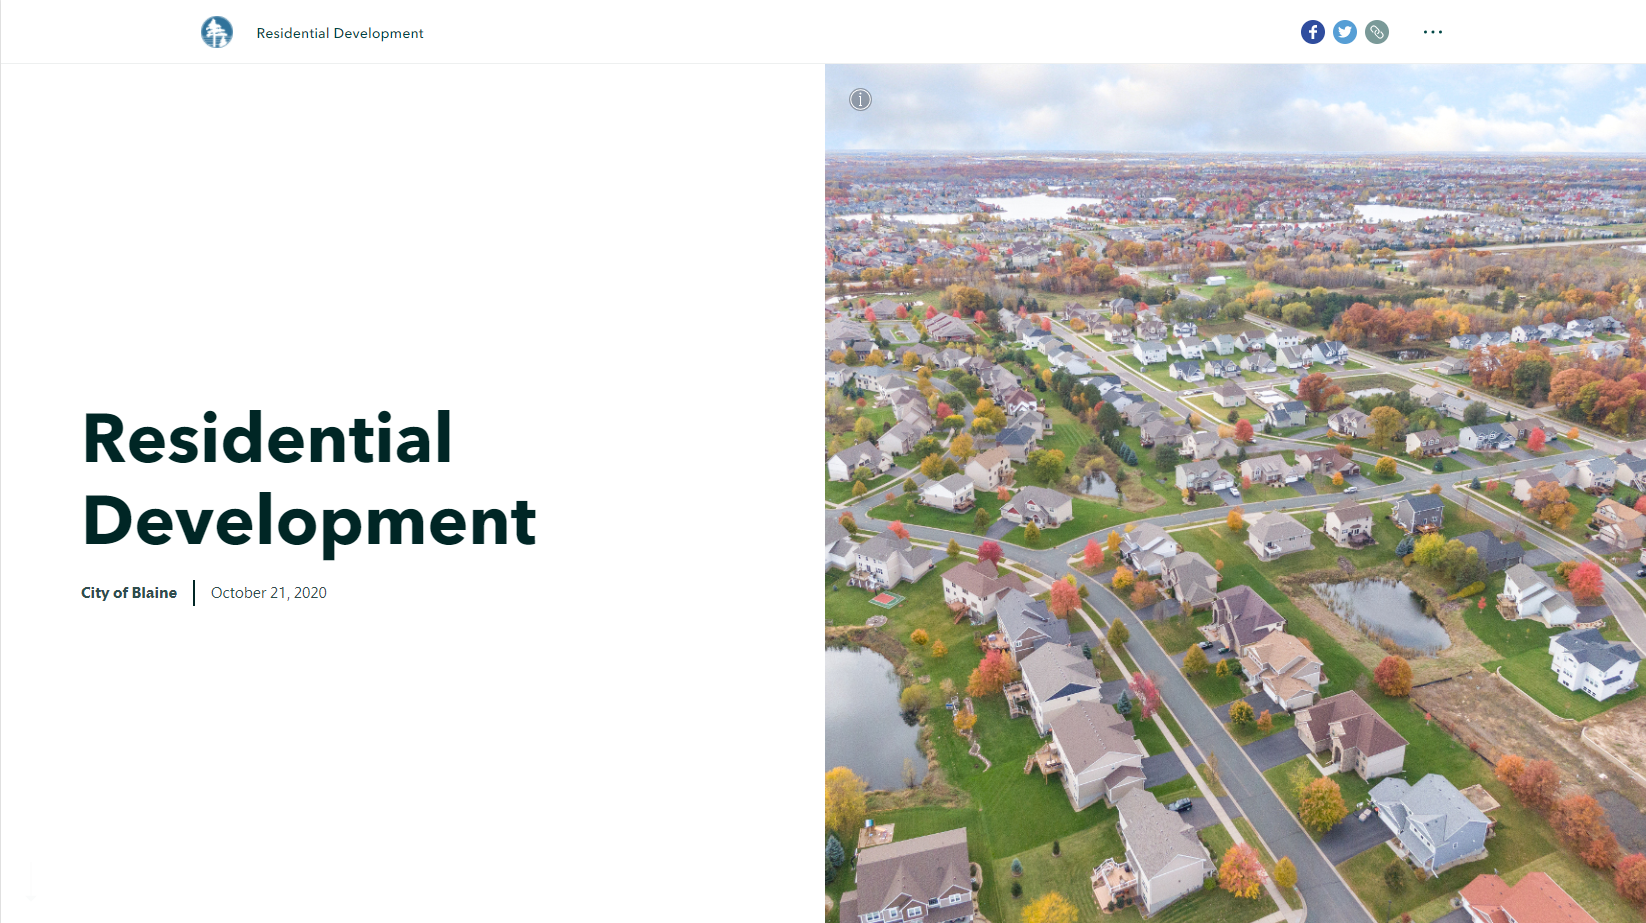 Image of the residential development map in the City of Blaine. Opens in new window